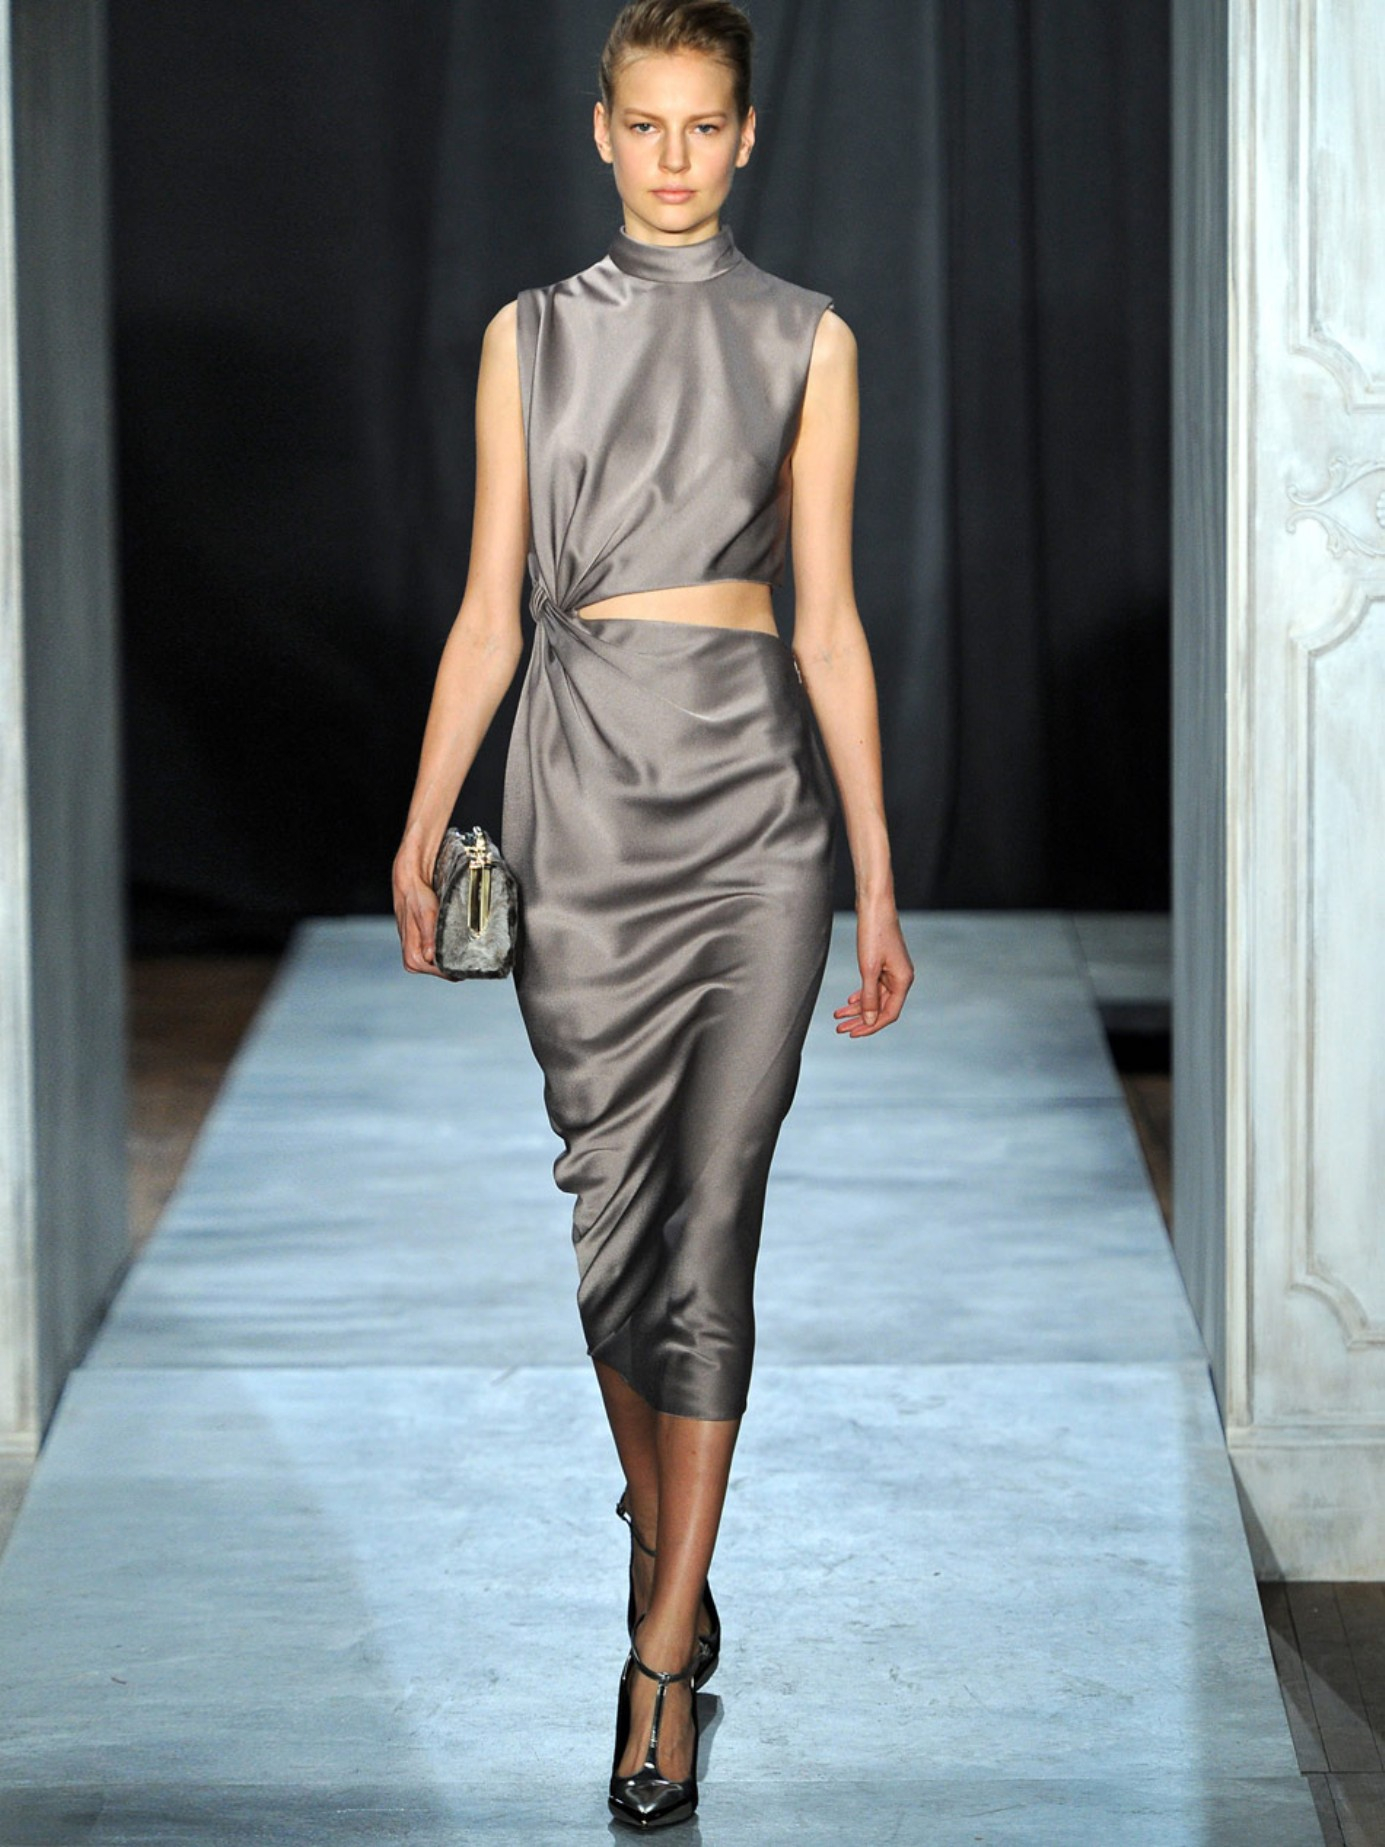 Lyst - Jason Wu Twisted Cut-out Satin Dress in Gray